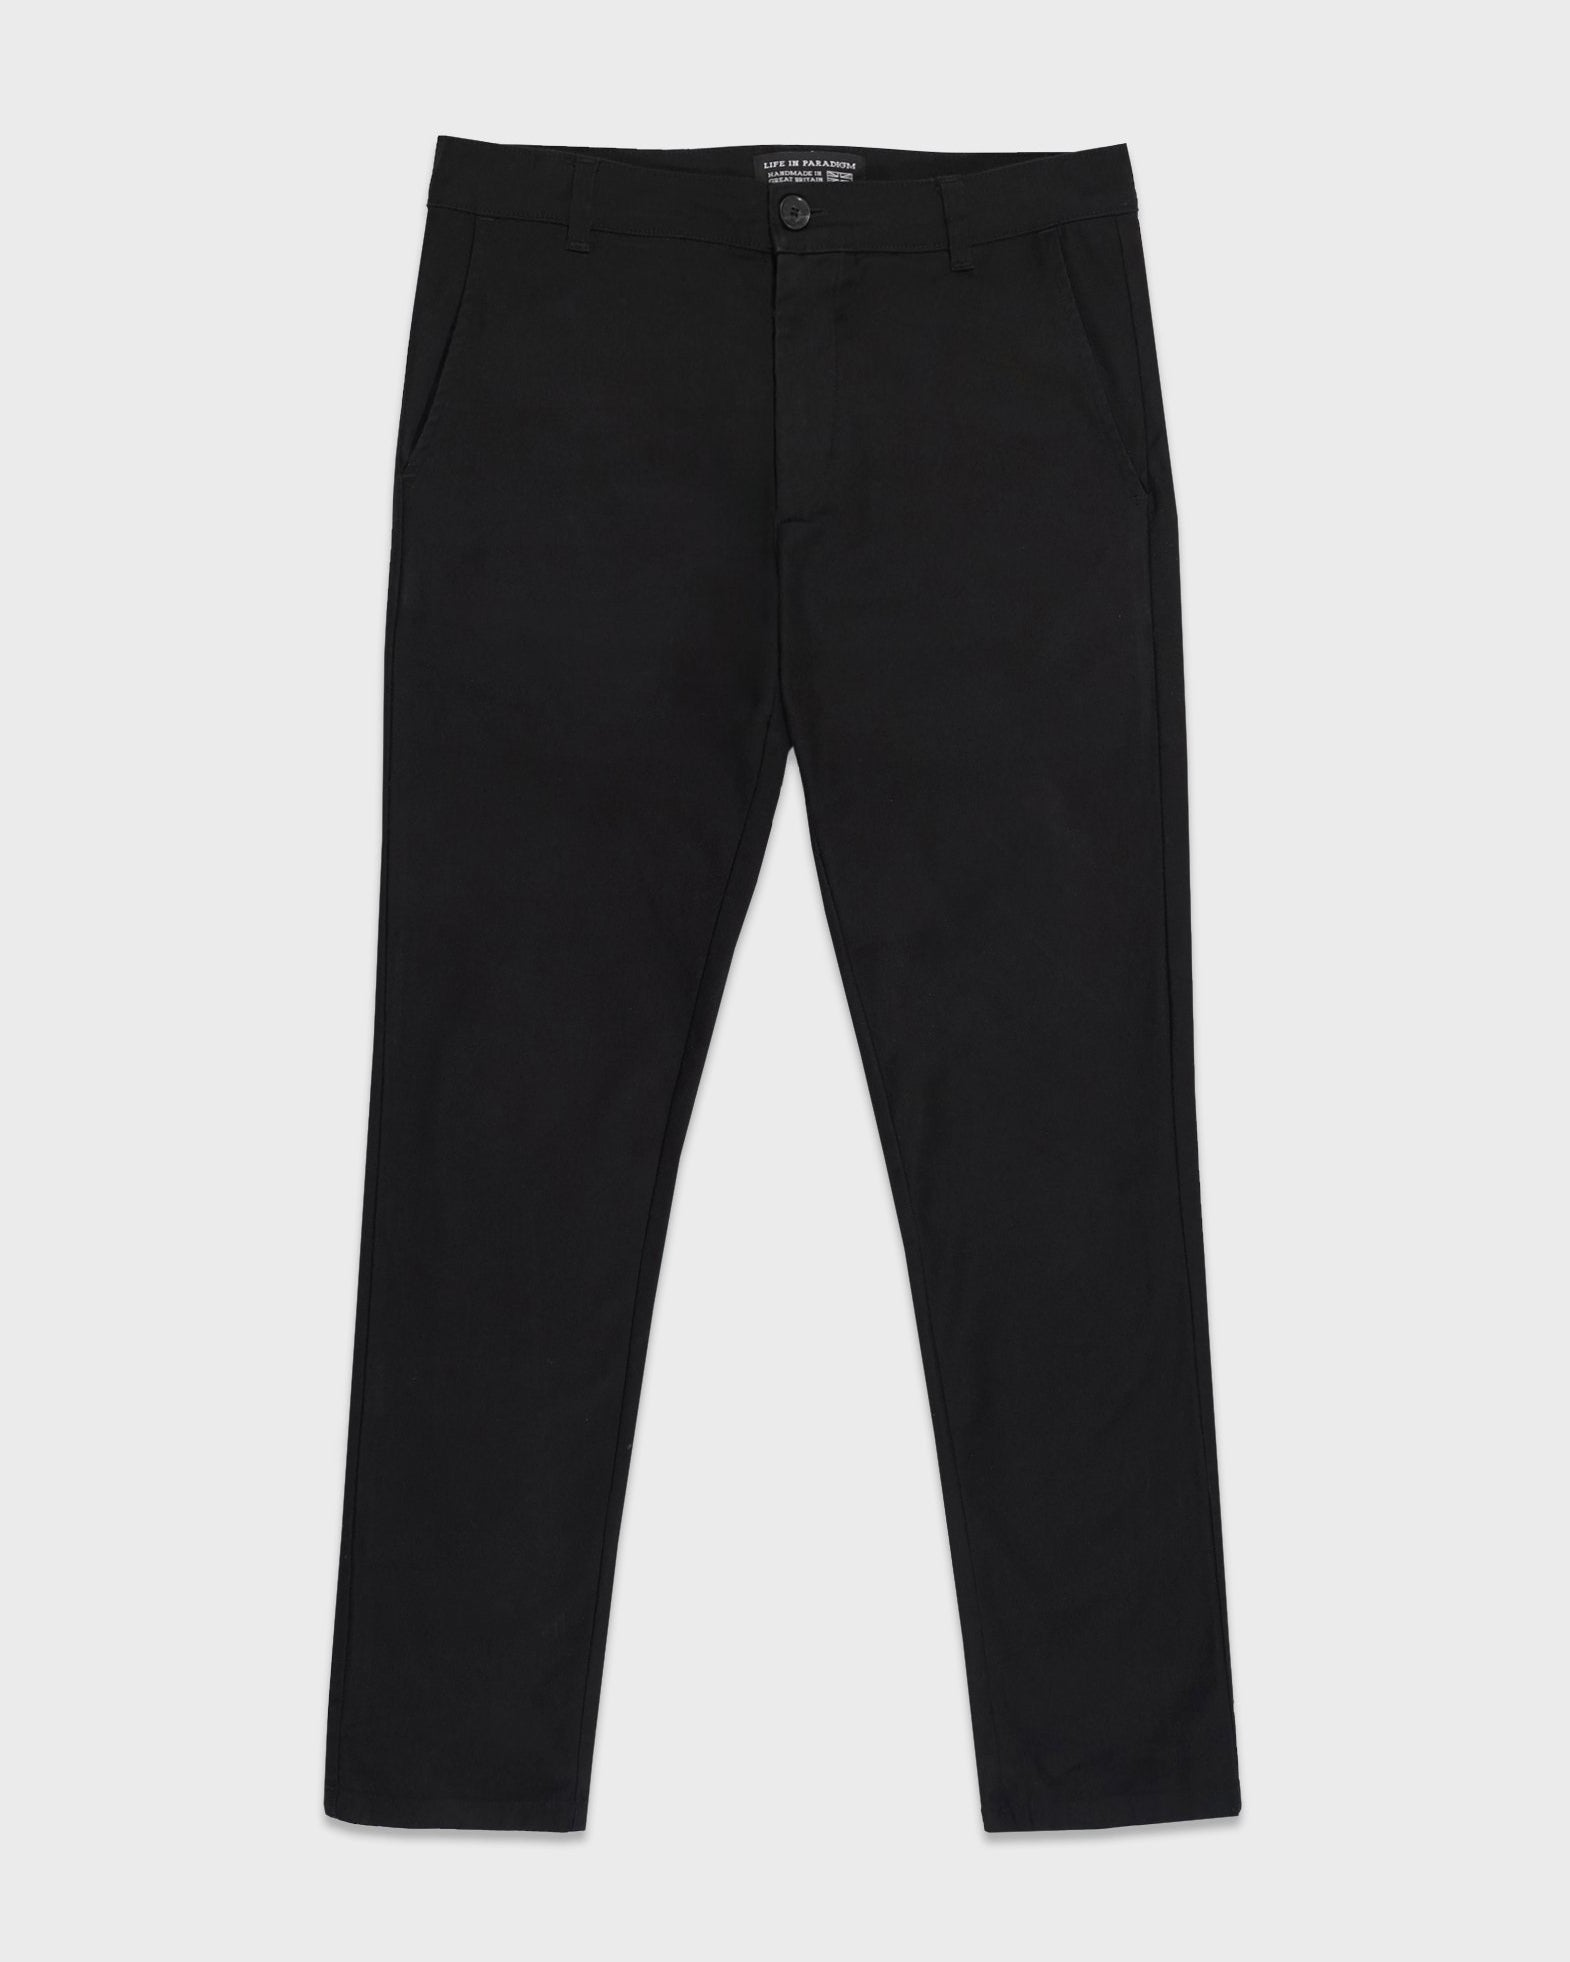 Black Stokey Chino - Life in Paradigm Menswear London